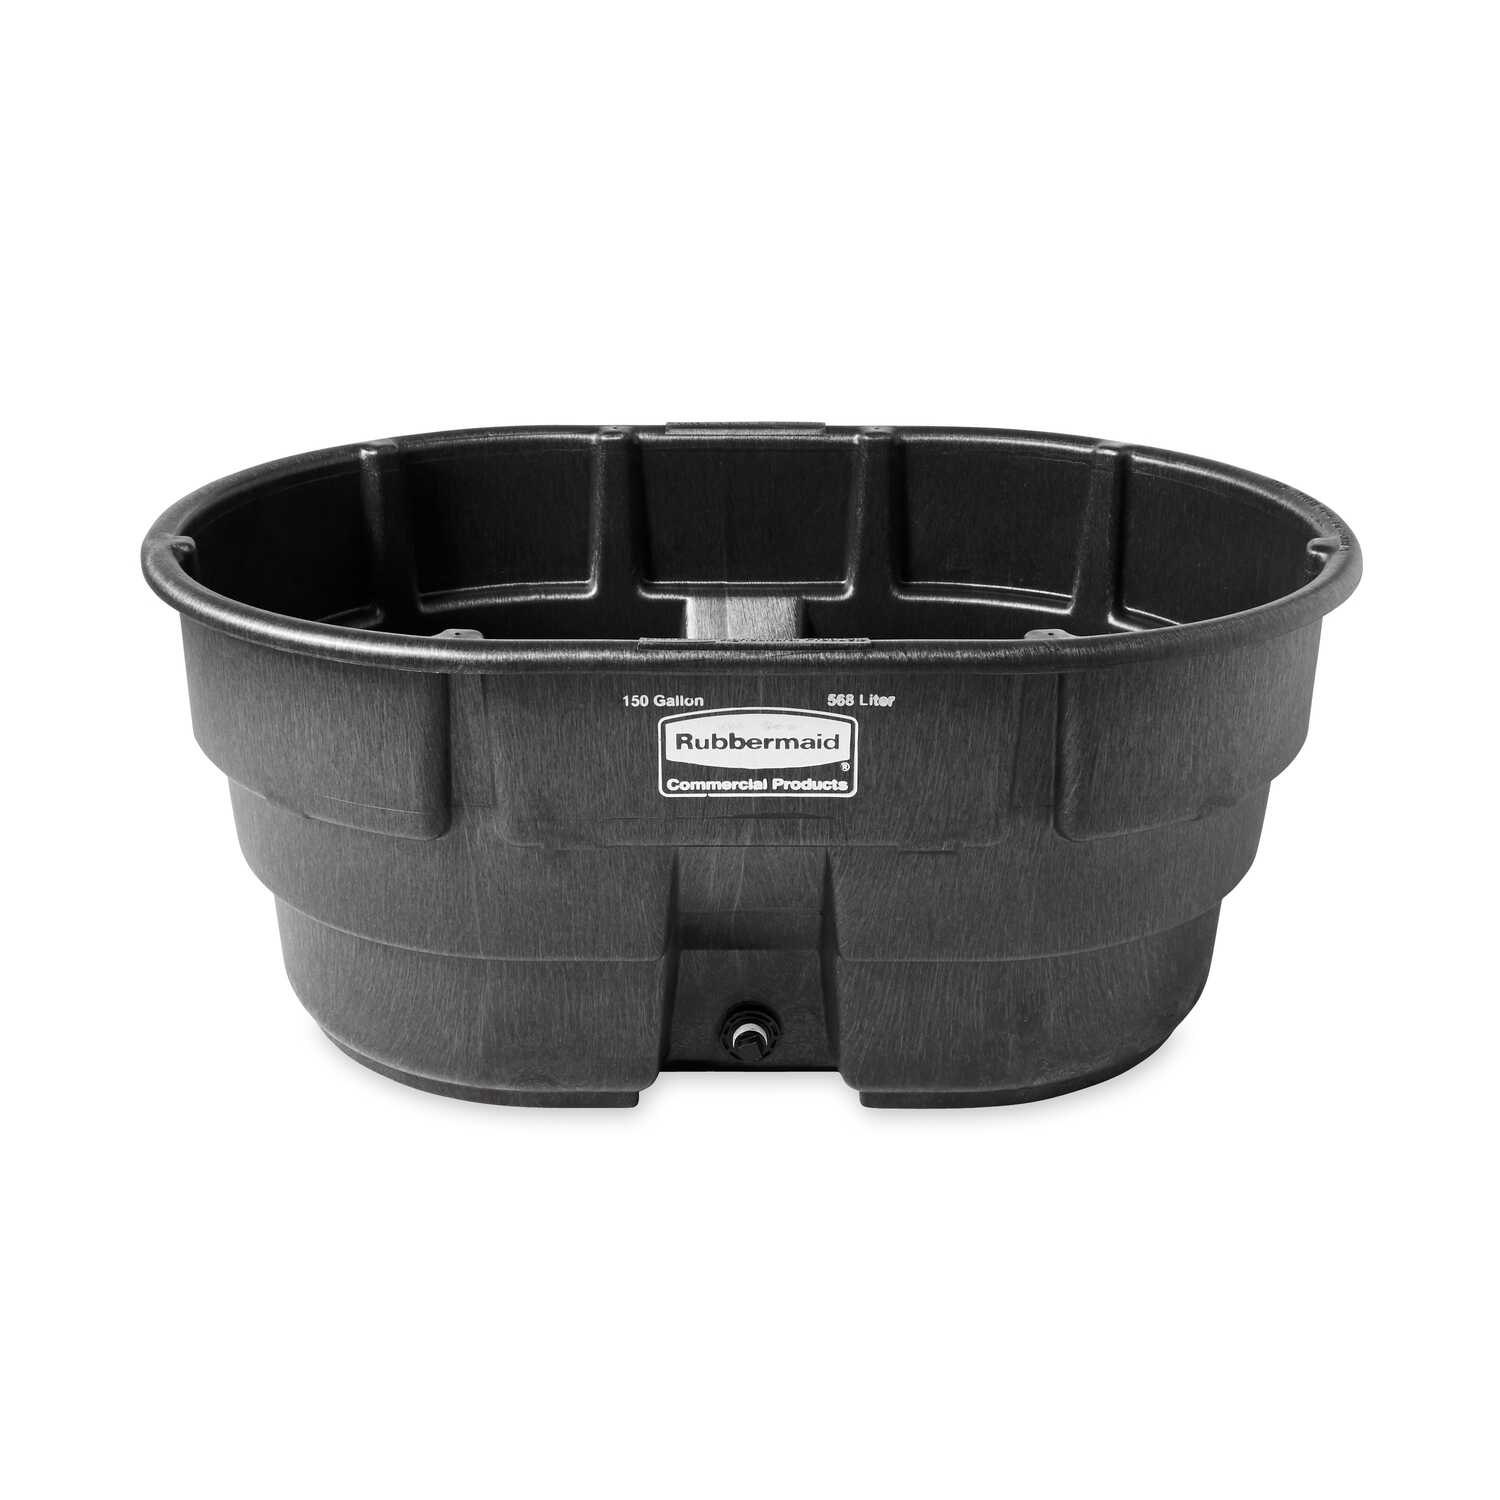 Rubbermaid Commercial 150 Gal Stock Tank For Livestock